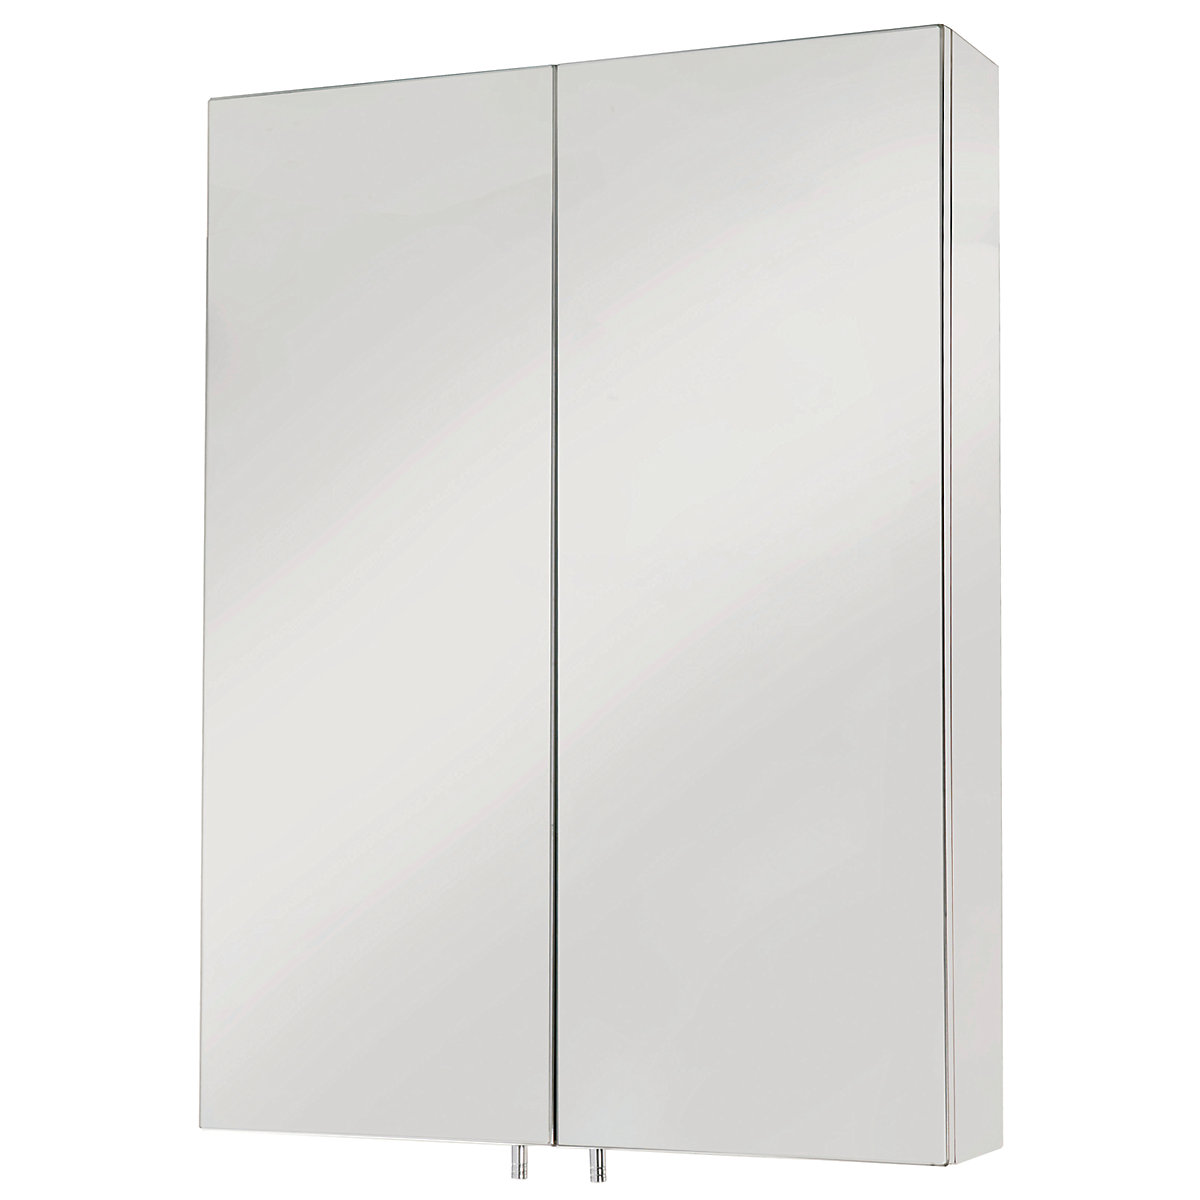 Iflo Single Door Bathroom Cabinet Stainless Steel | Travis Perkins